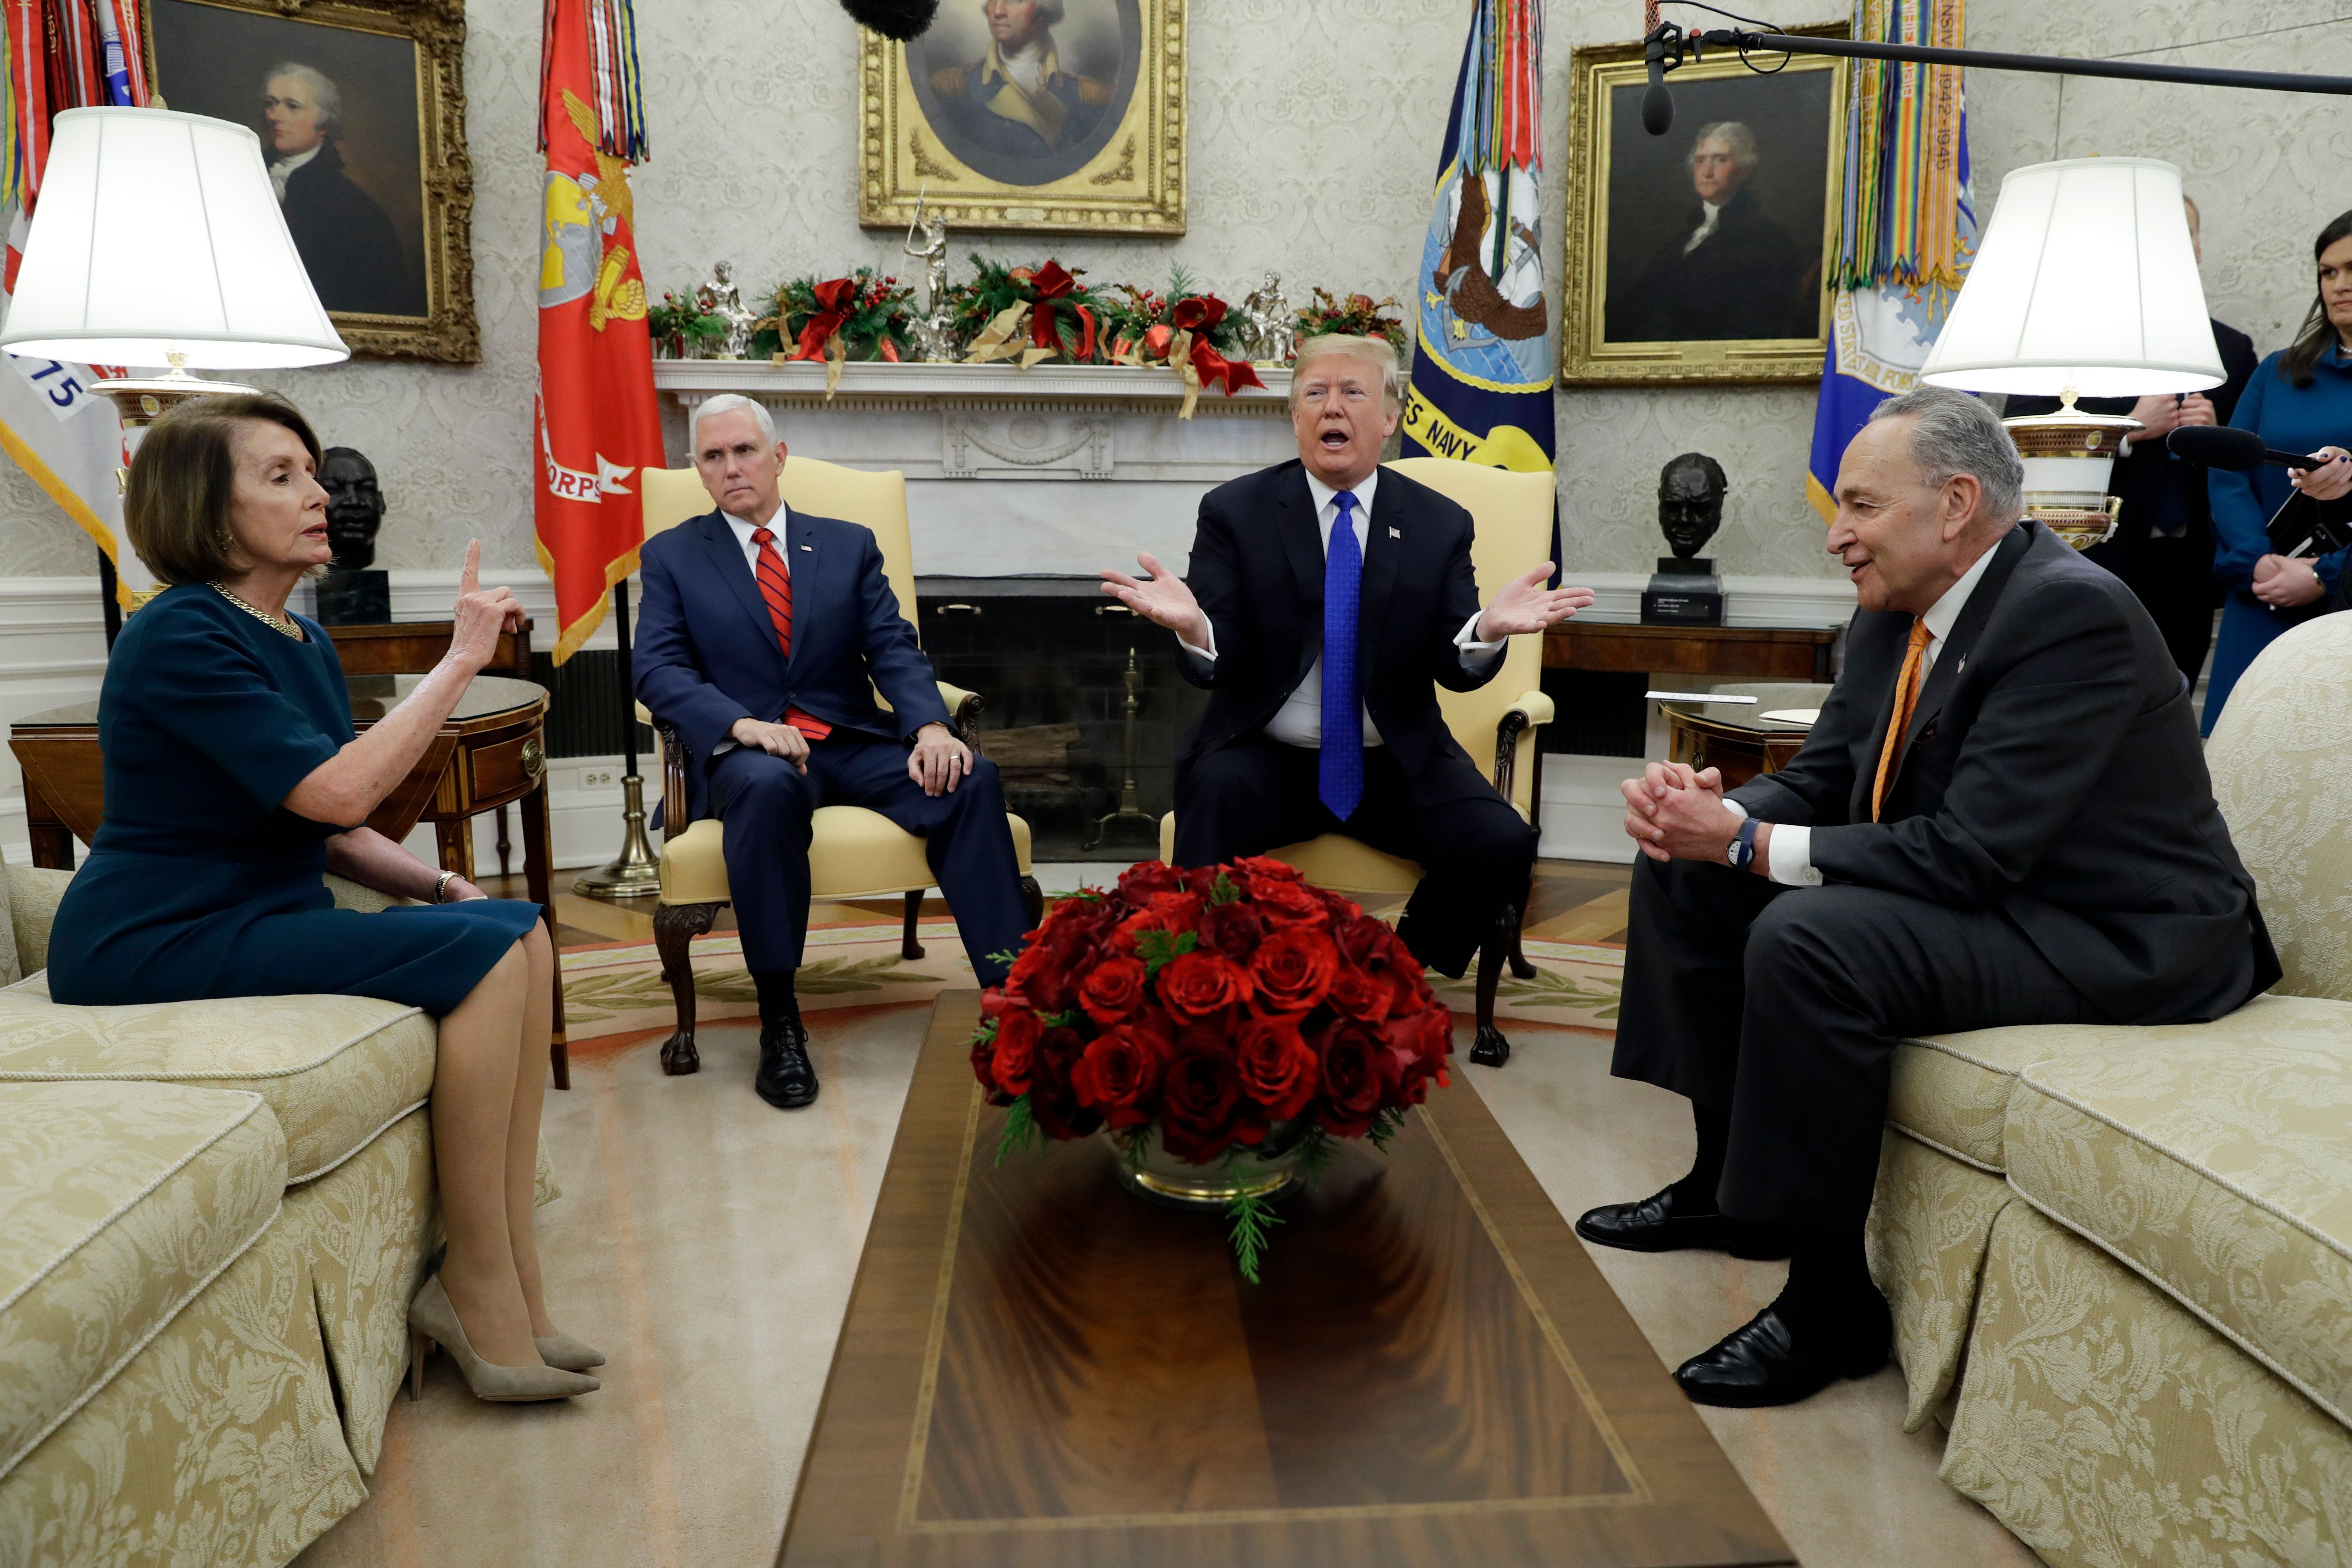 Trump Battles With Nancy Pelosi And Chuck Schumer Over Border Wall Funding